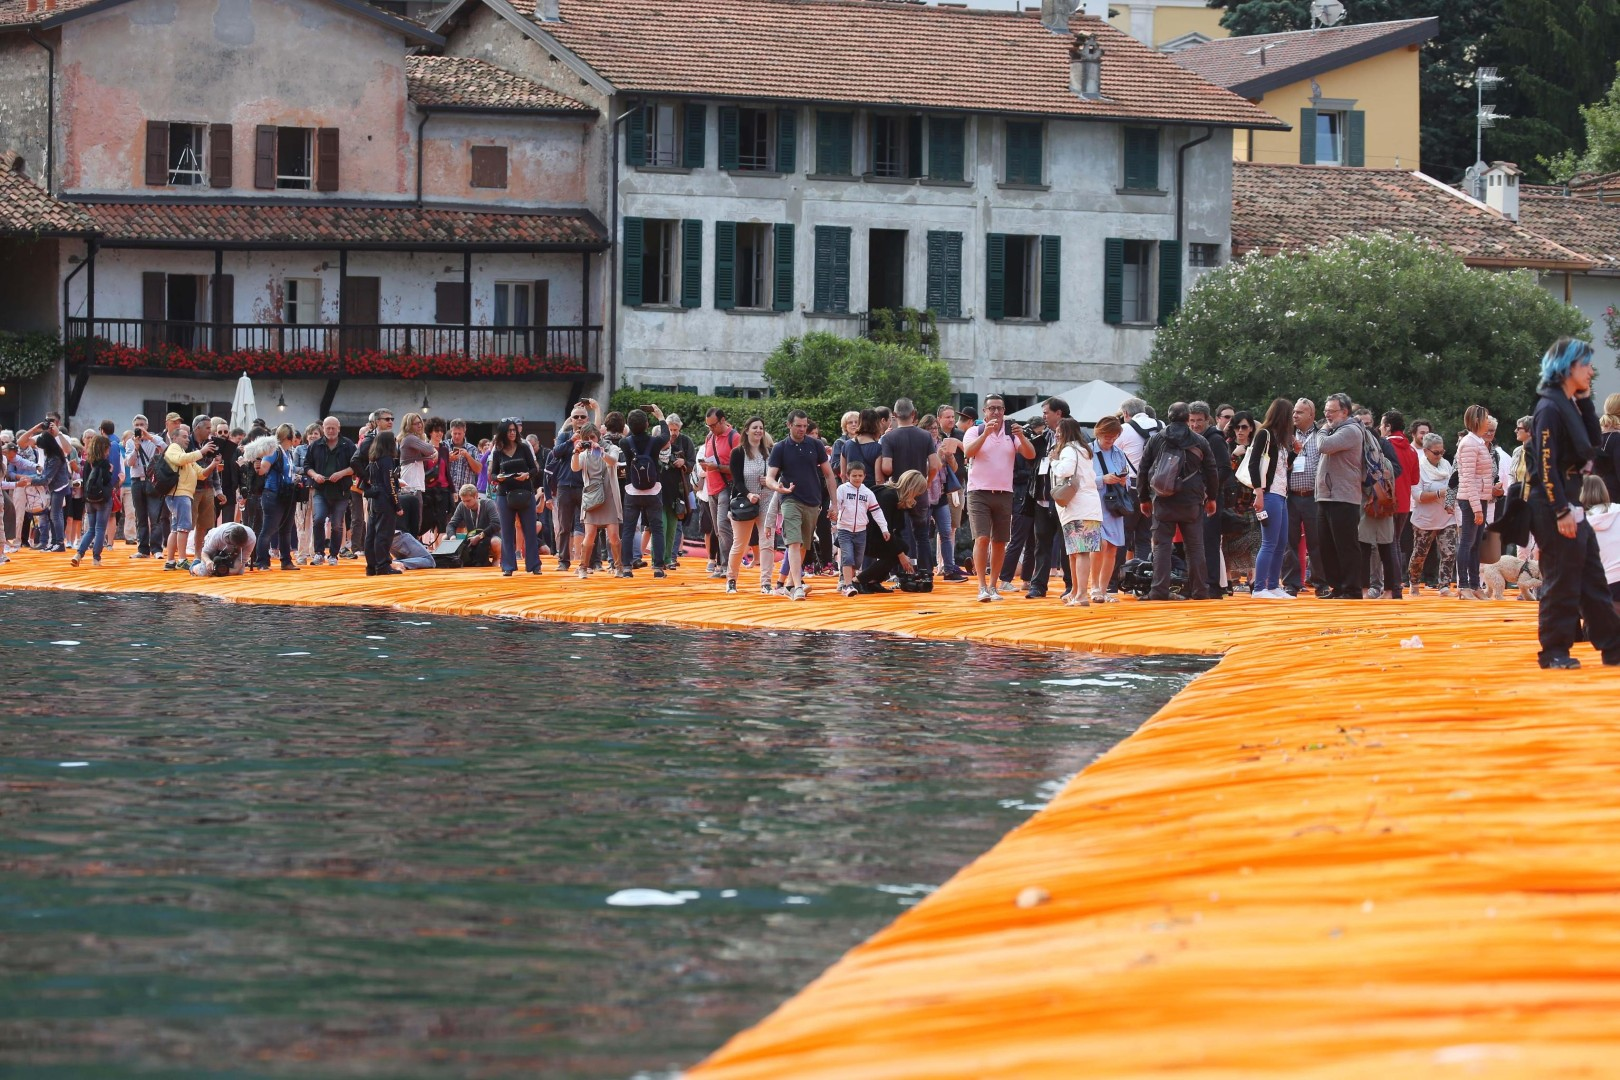 Lago d'Iseo, The Floating Piers: istruzioni per l'uso